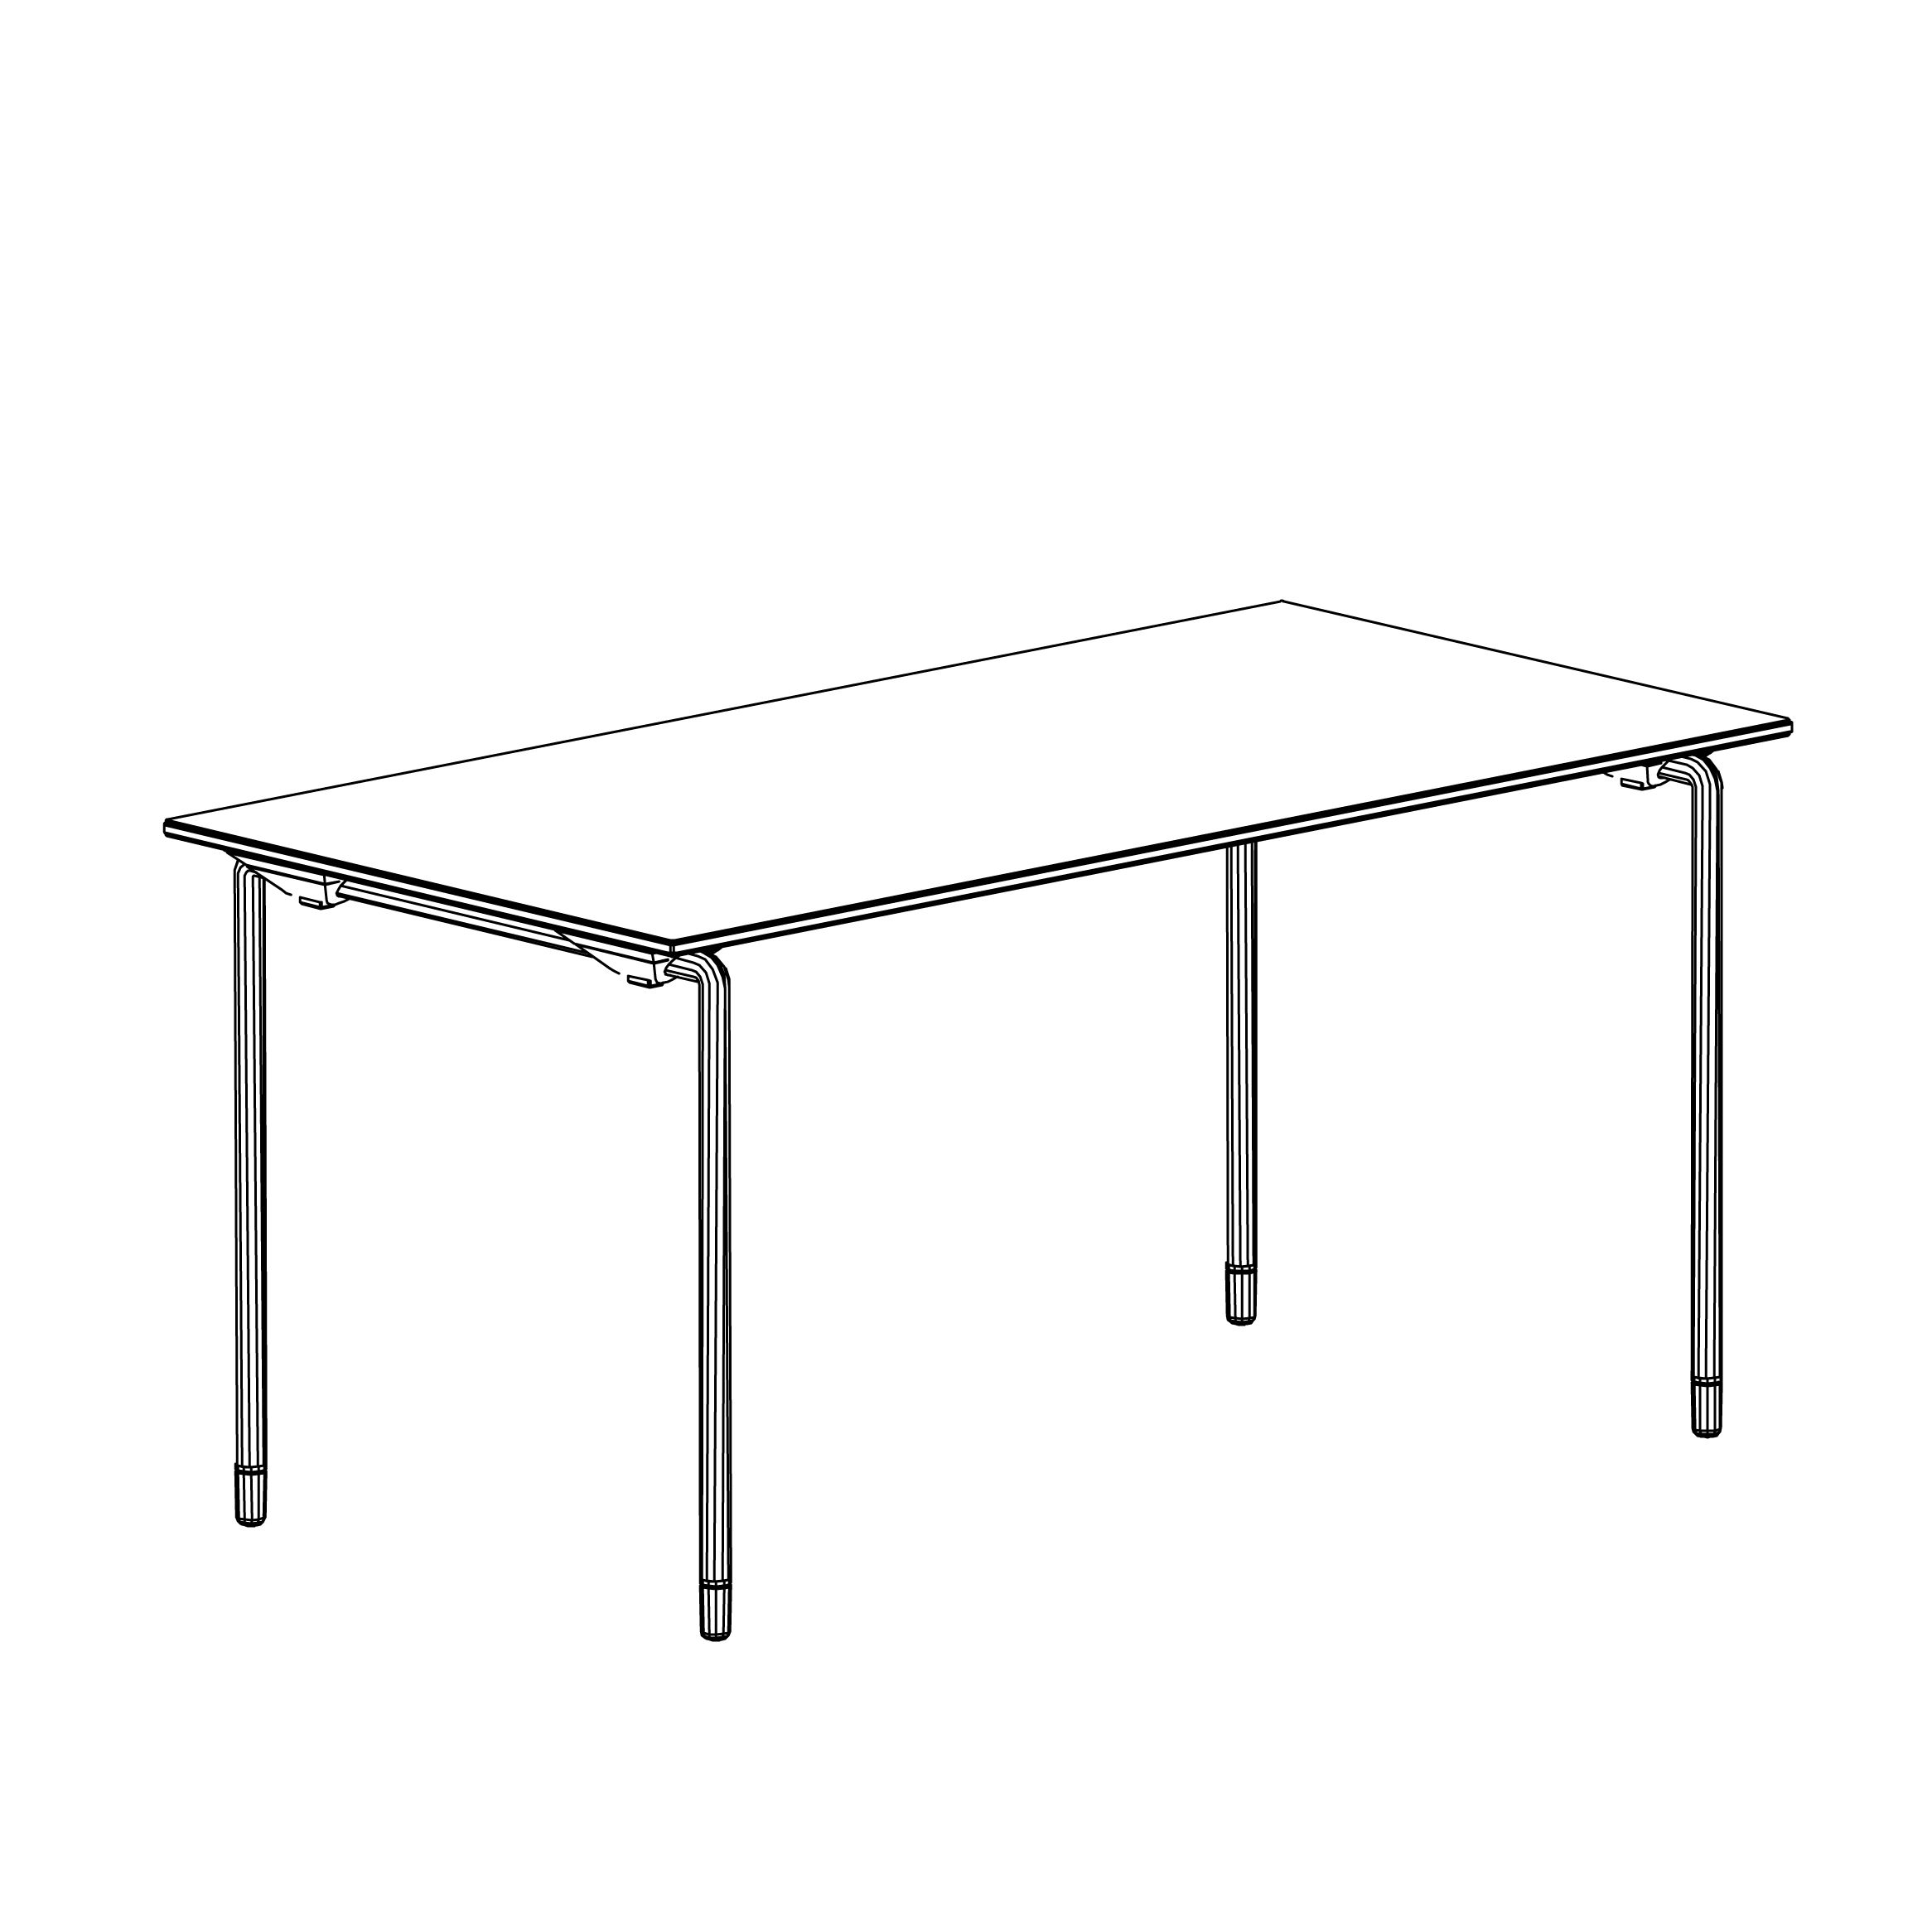 Furniture Sketch Of The Table Plico Designed By KOMPLOT Design For HOWE